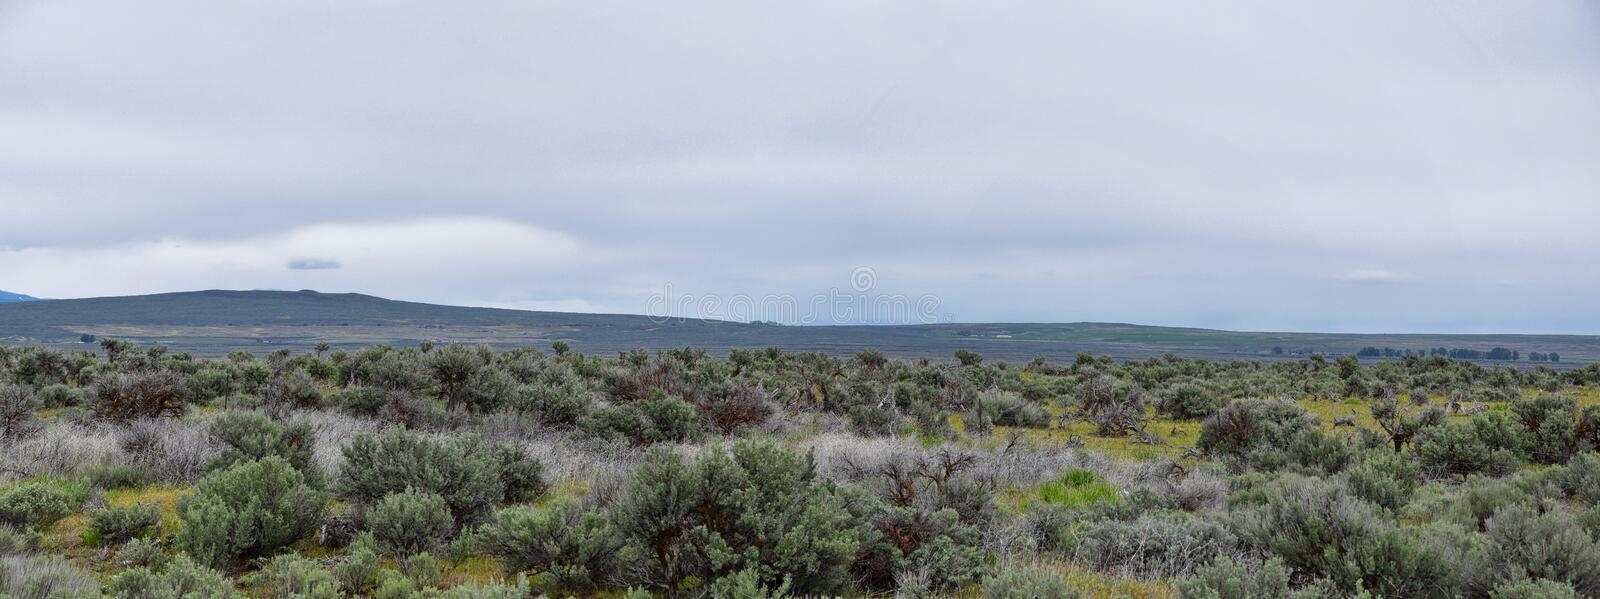 Sawtooth Mountains National Forest Landscape stormy panorama from South headed to Sun Valley, view of rural grazing land, Sagebrus. H, Lava Fields in Idaho royalty free stock photo